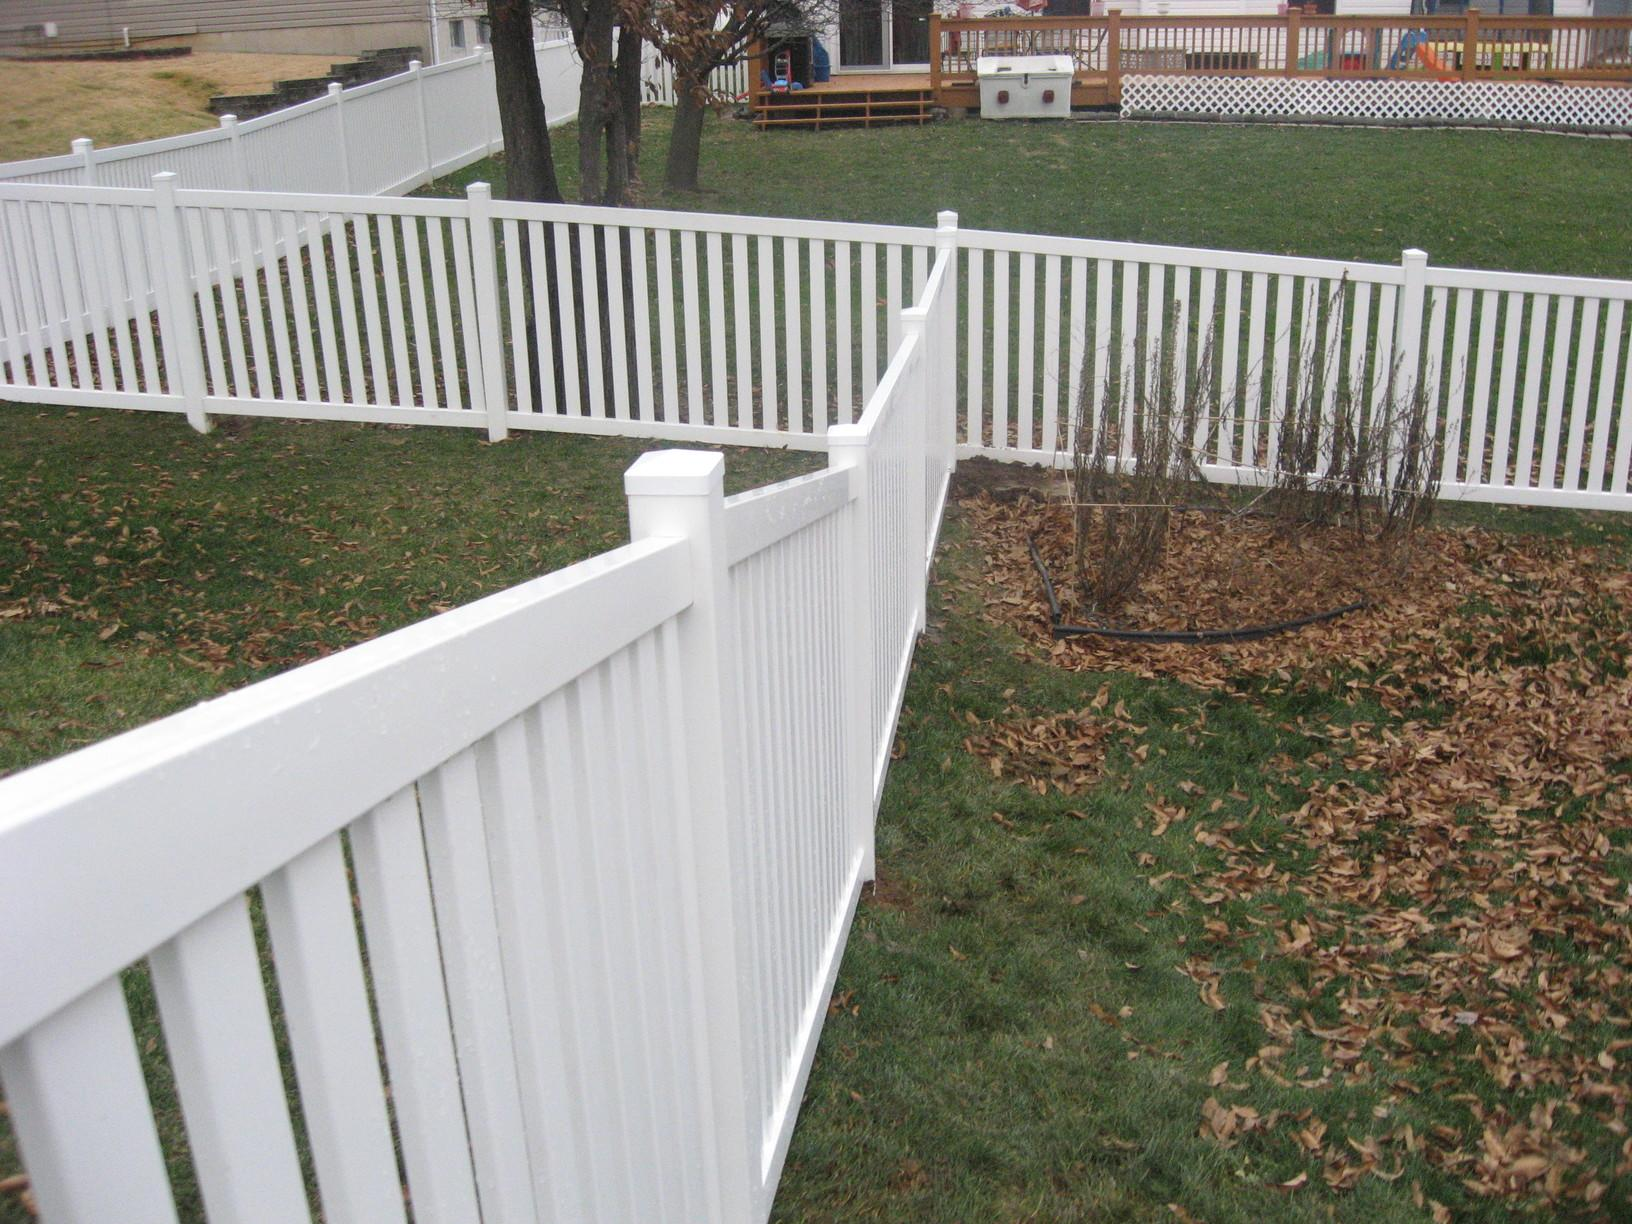 St Peters, MO Vinyl Fence Installation - After Photo